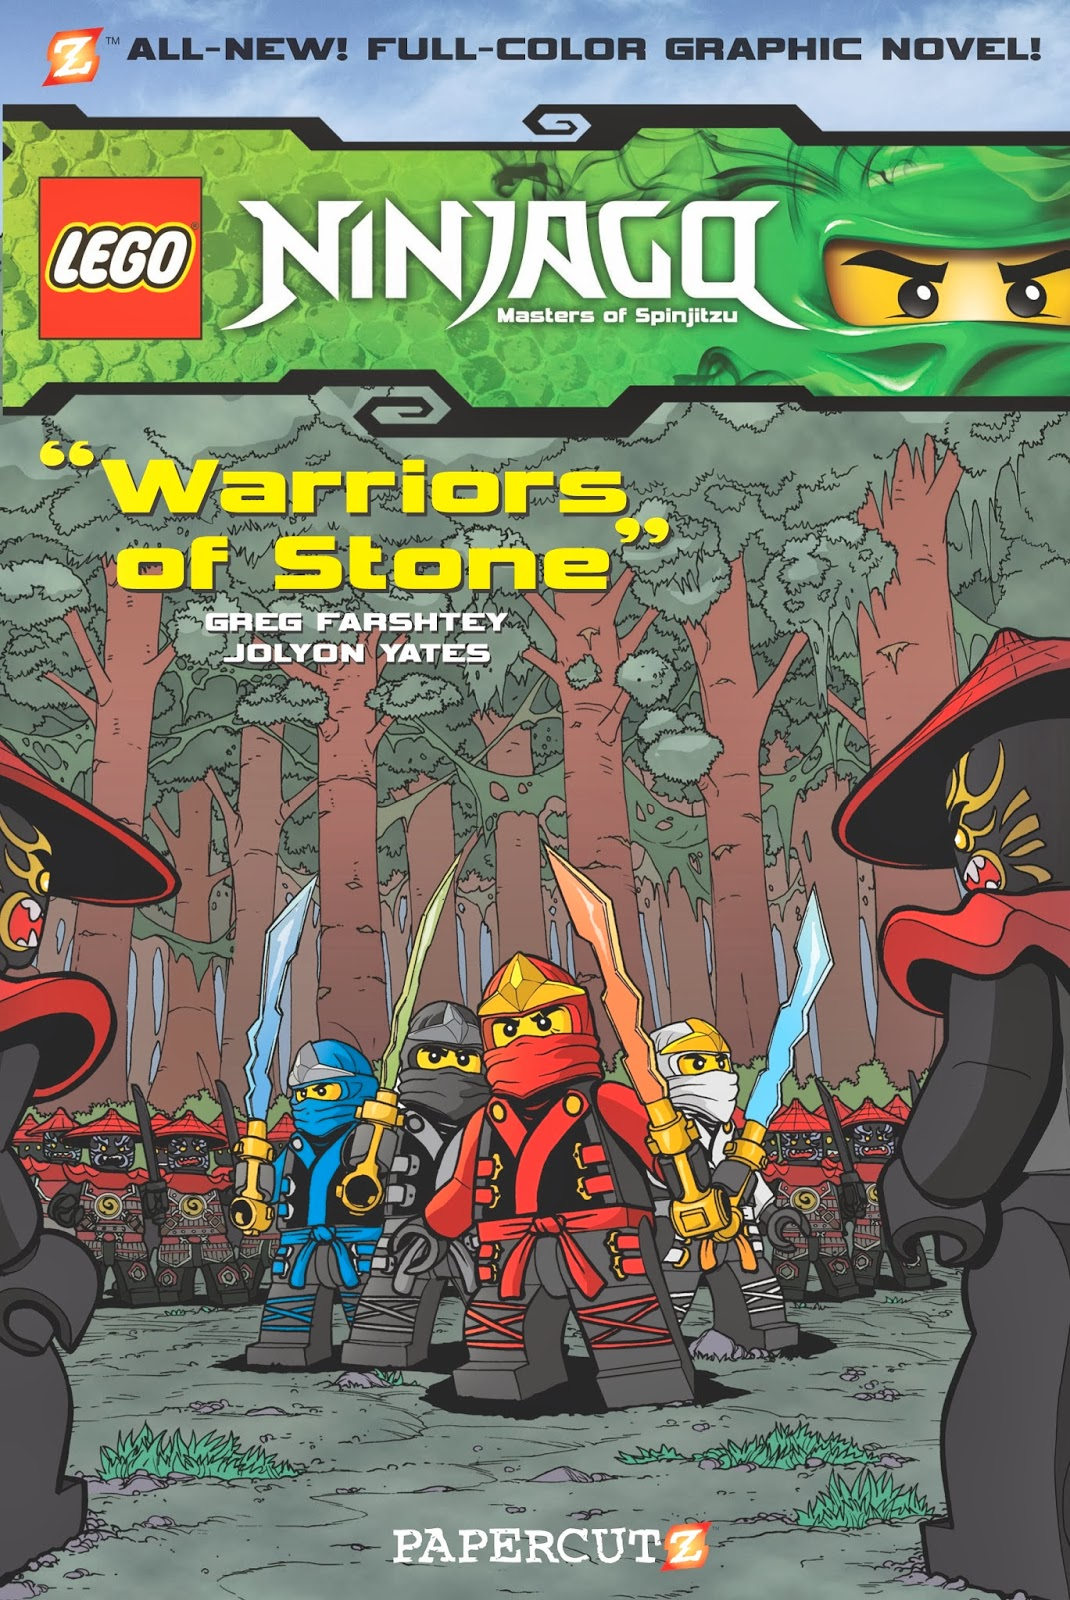 All About Bricks: Review: Ninjago Graphic Novels #6 & #7